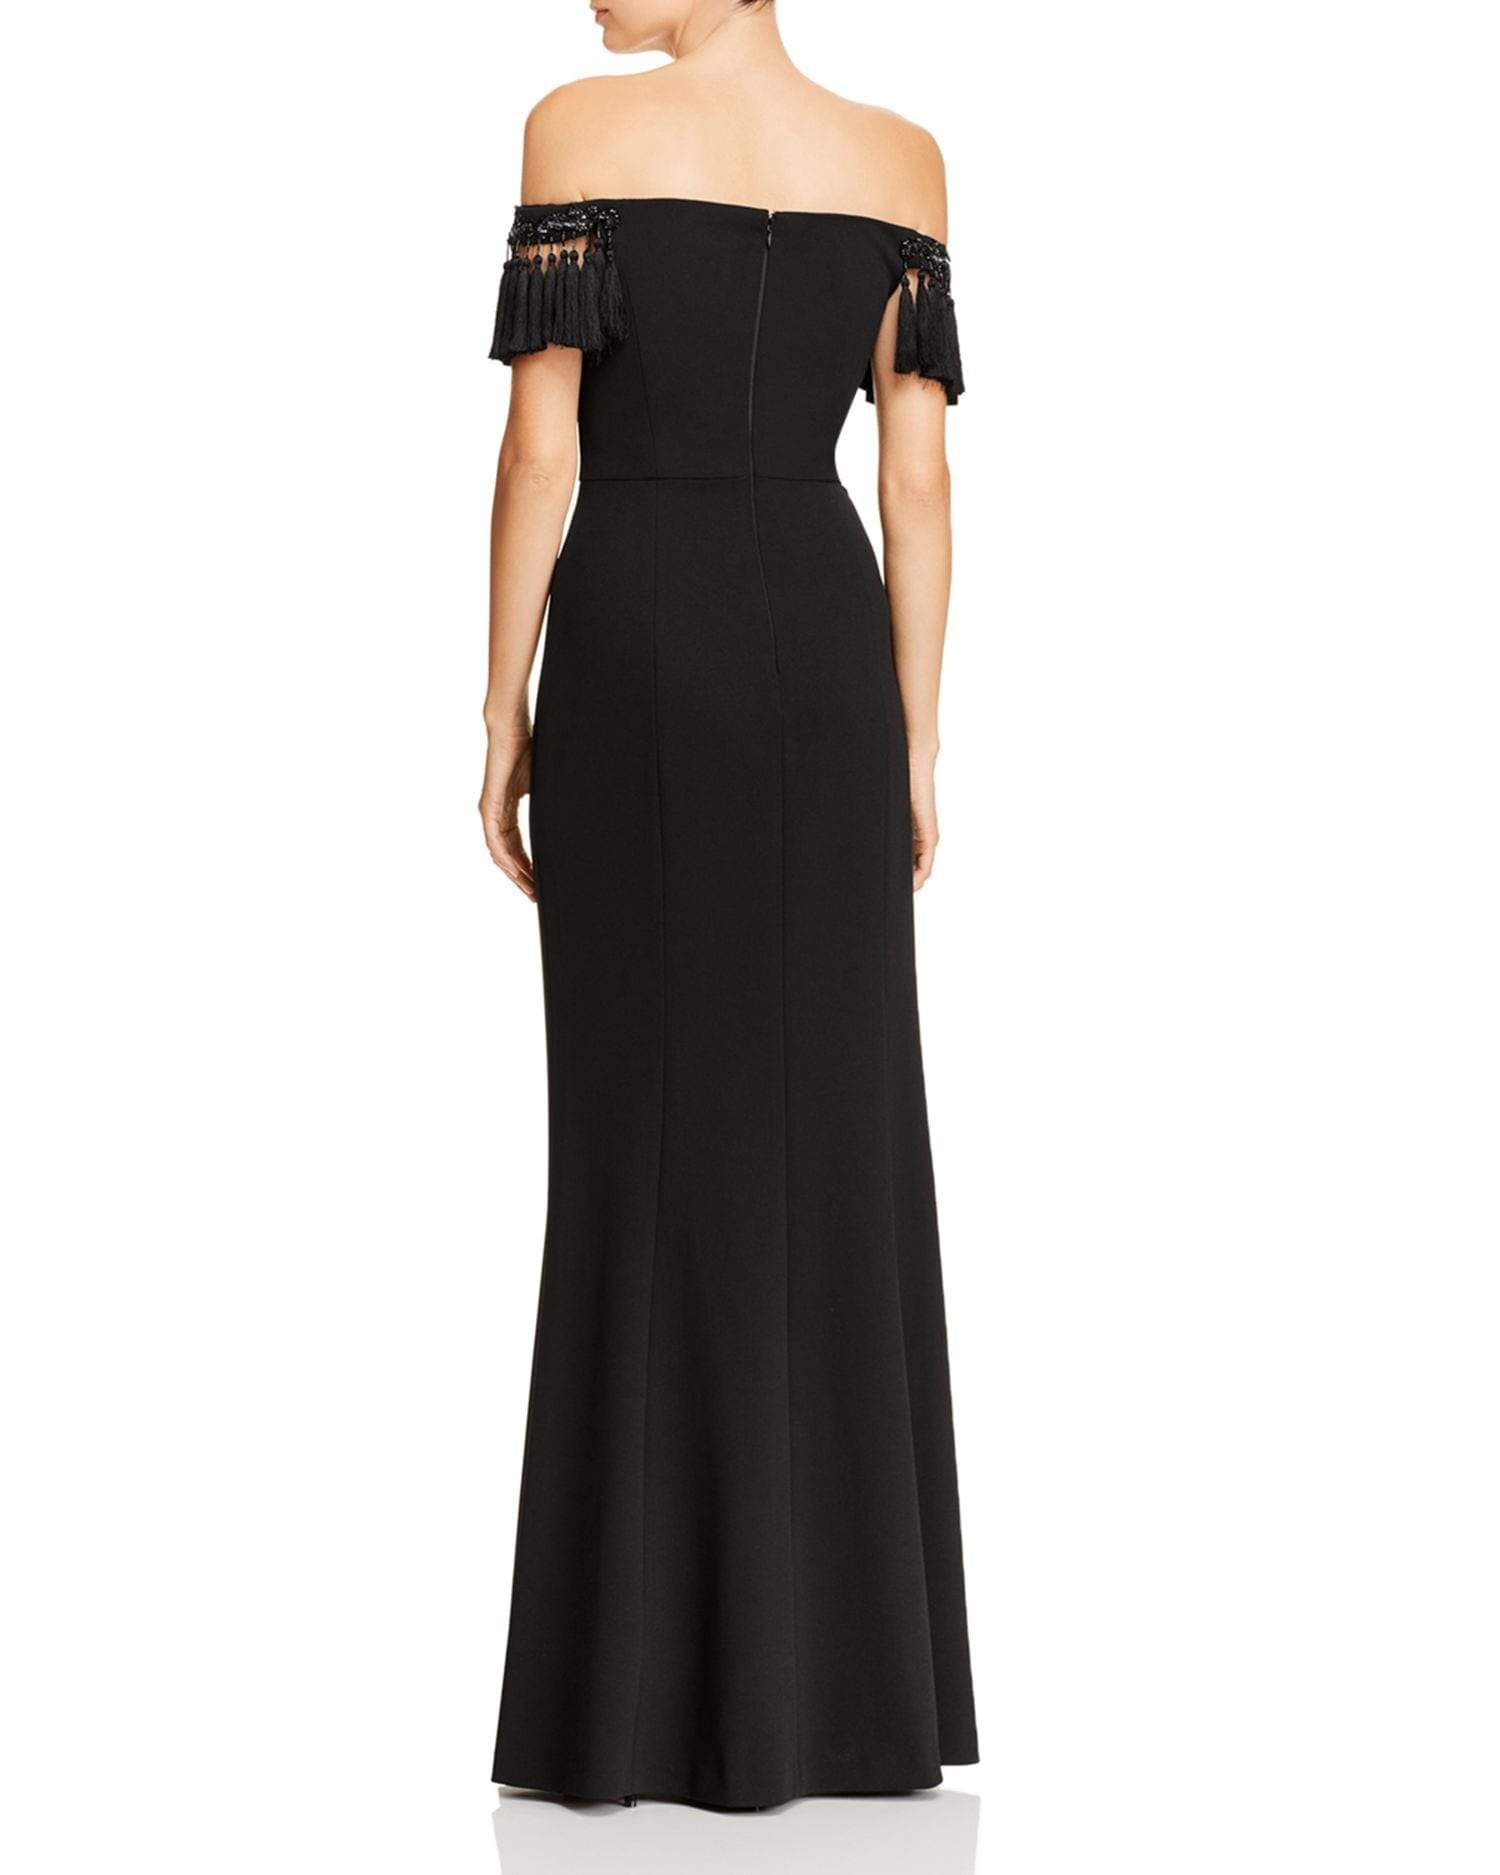 Aidan Mattox - MD1E203104 Off-Shoulder Tassel Sleeves Evening Gown In Black